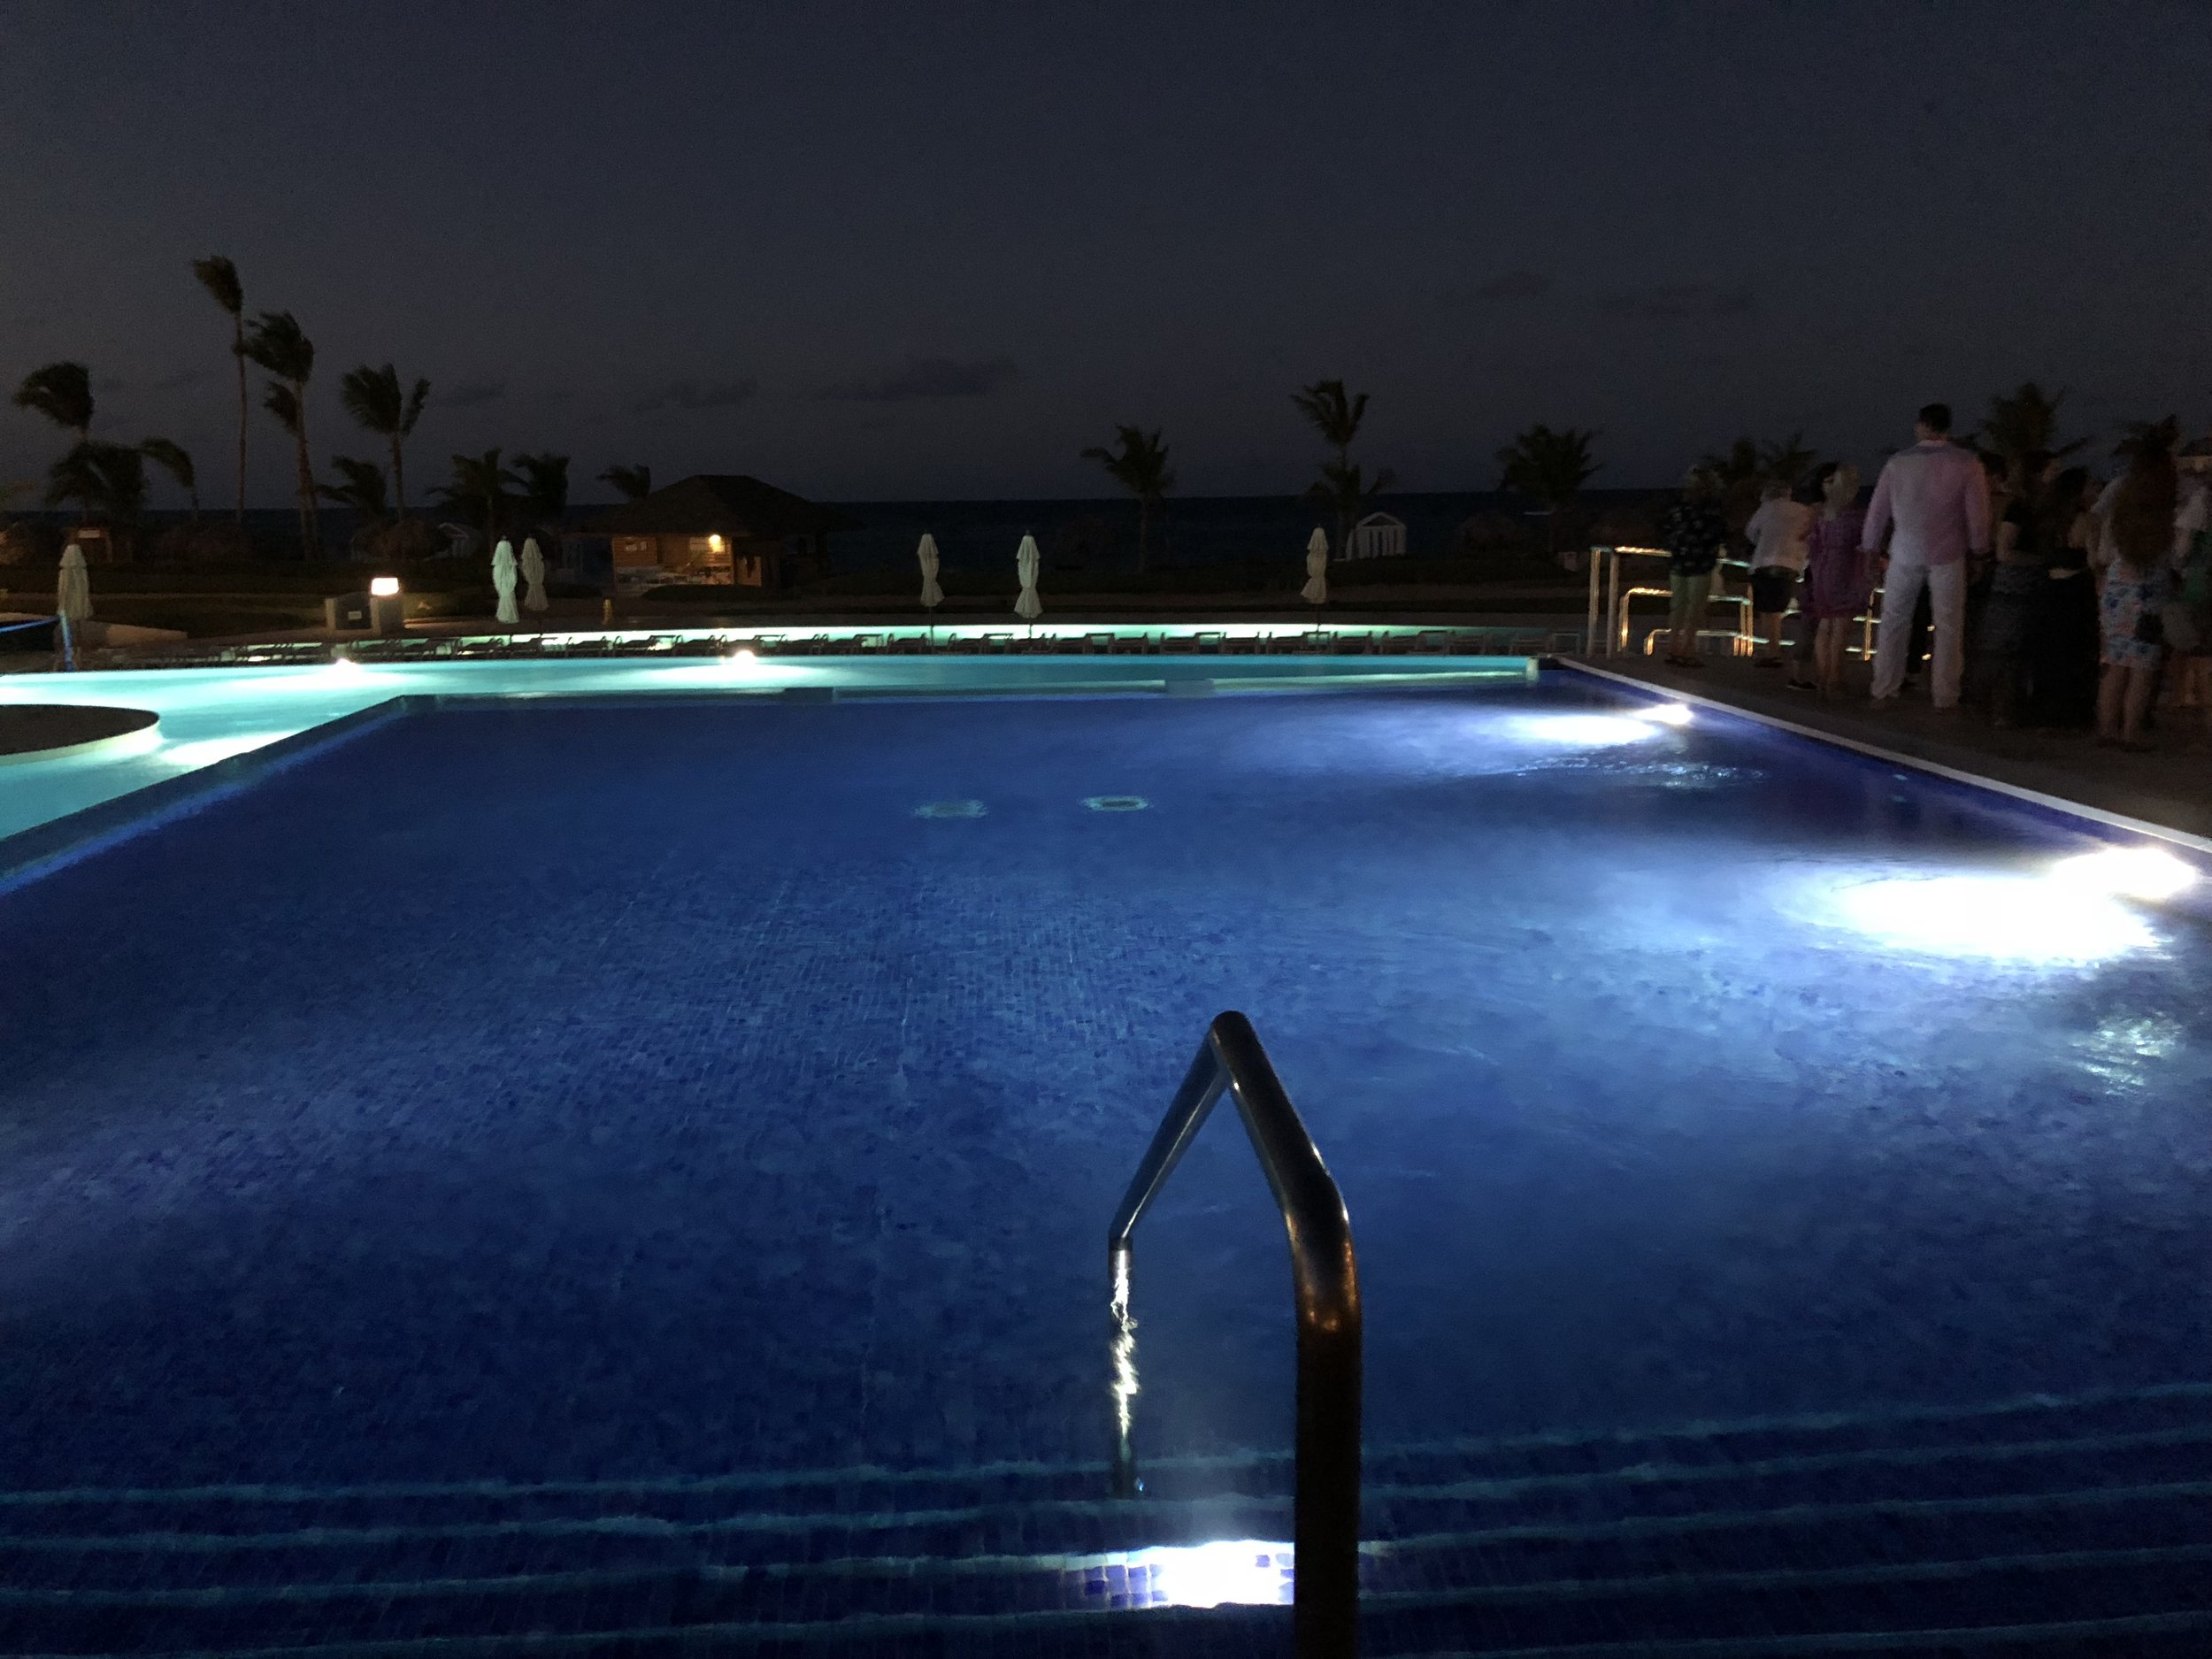 A night view of the main infinity pool.